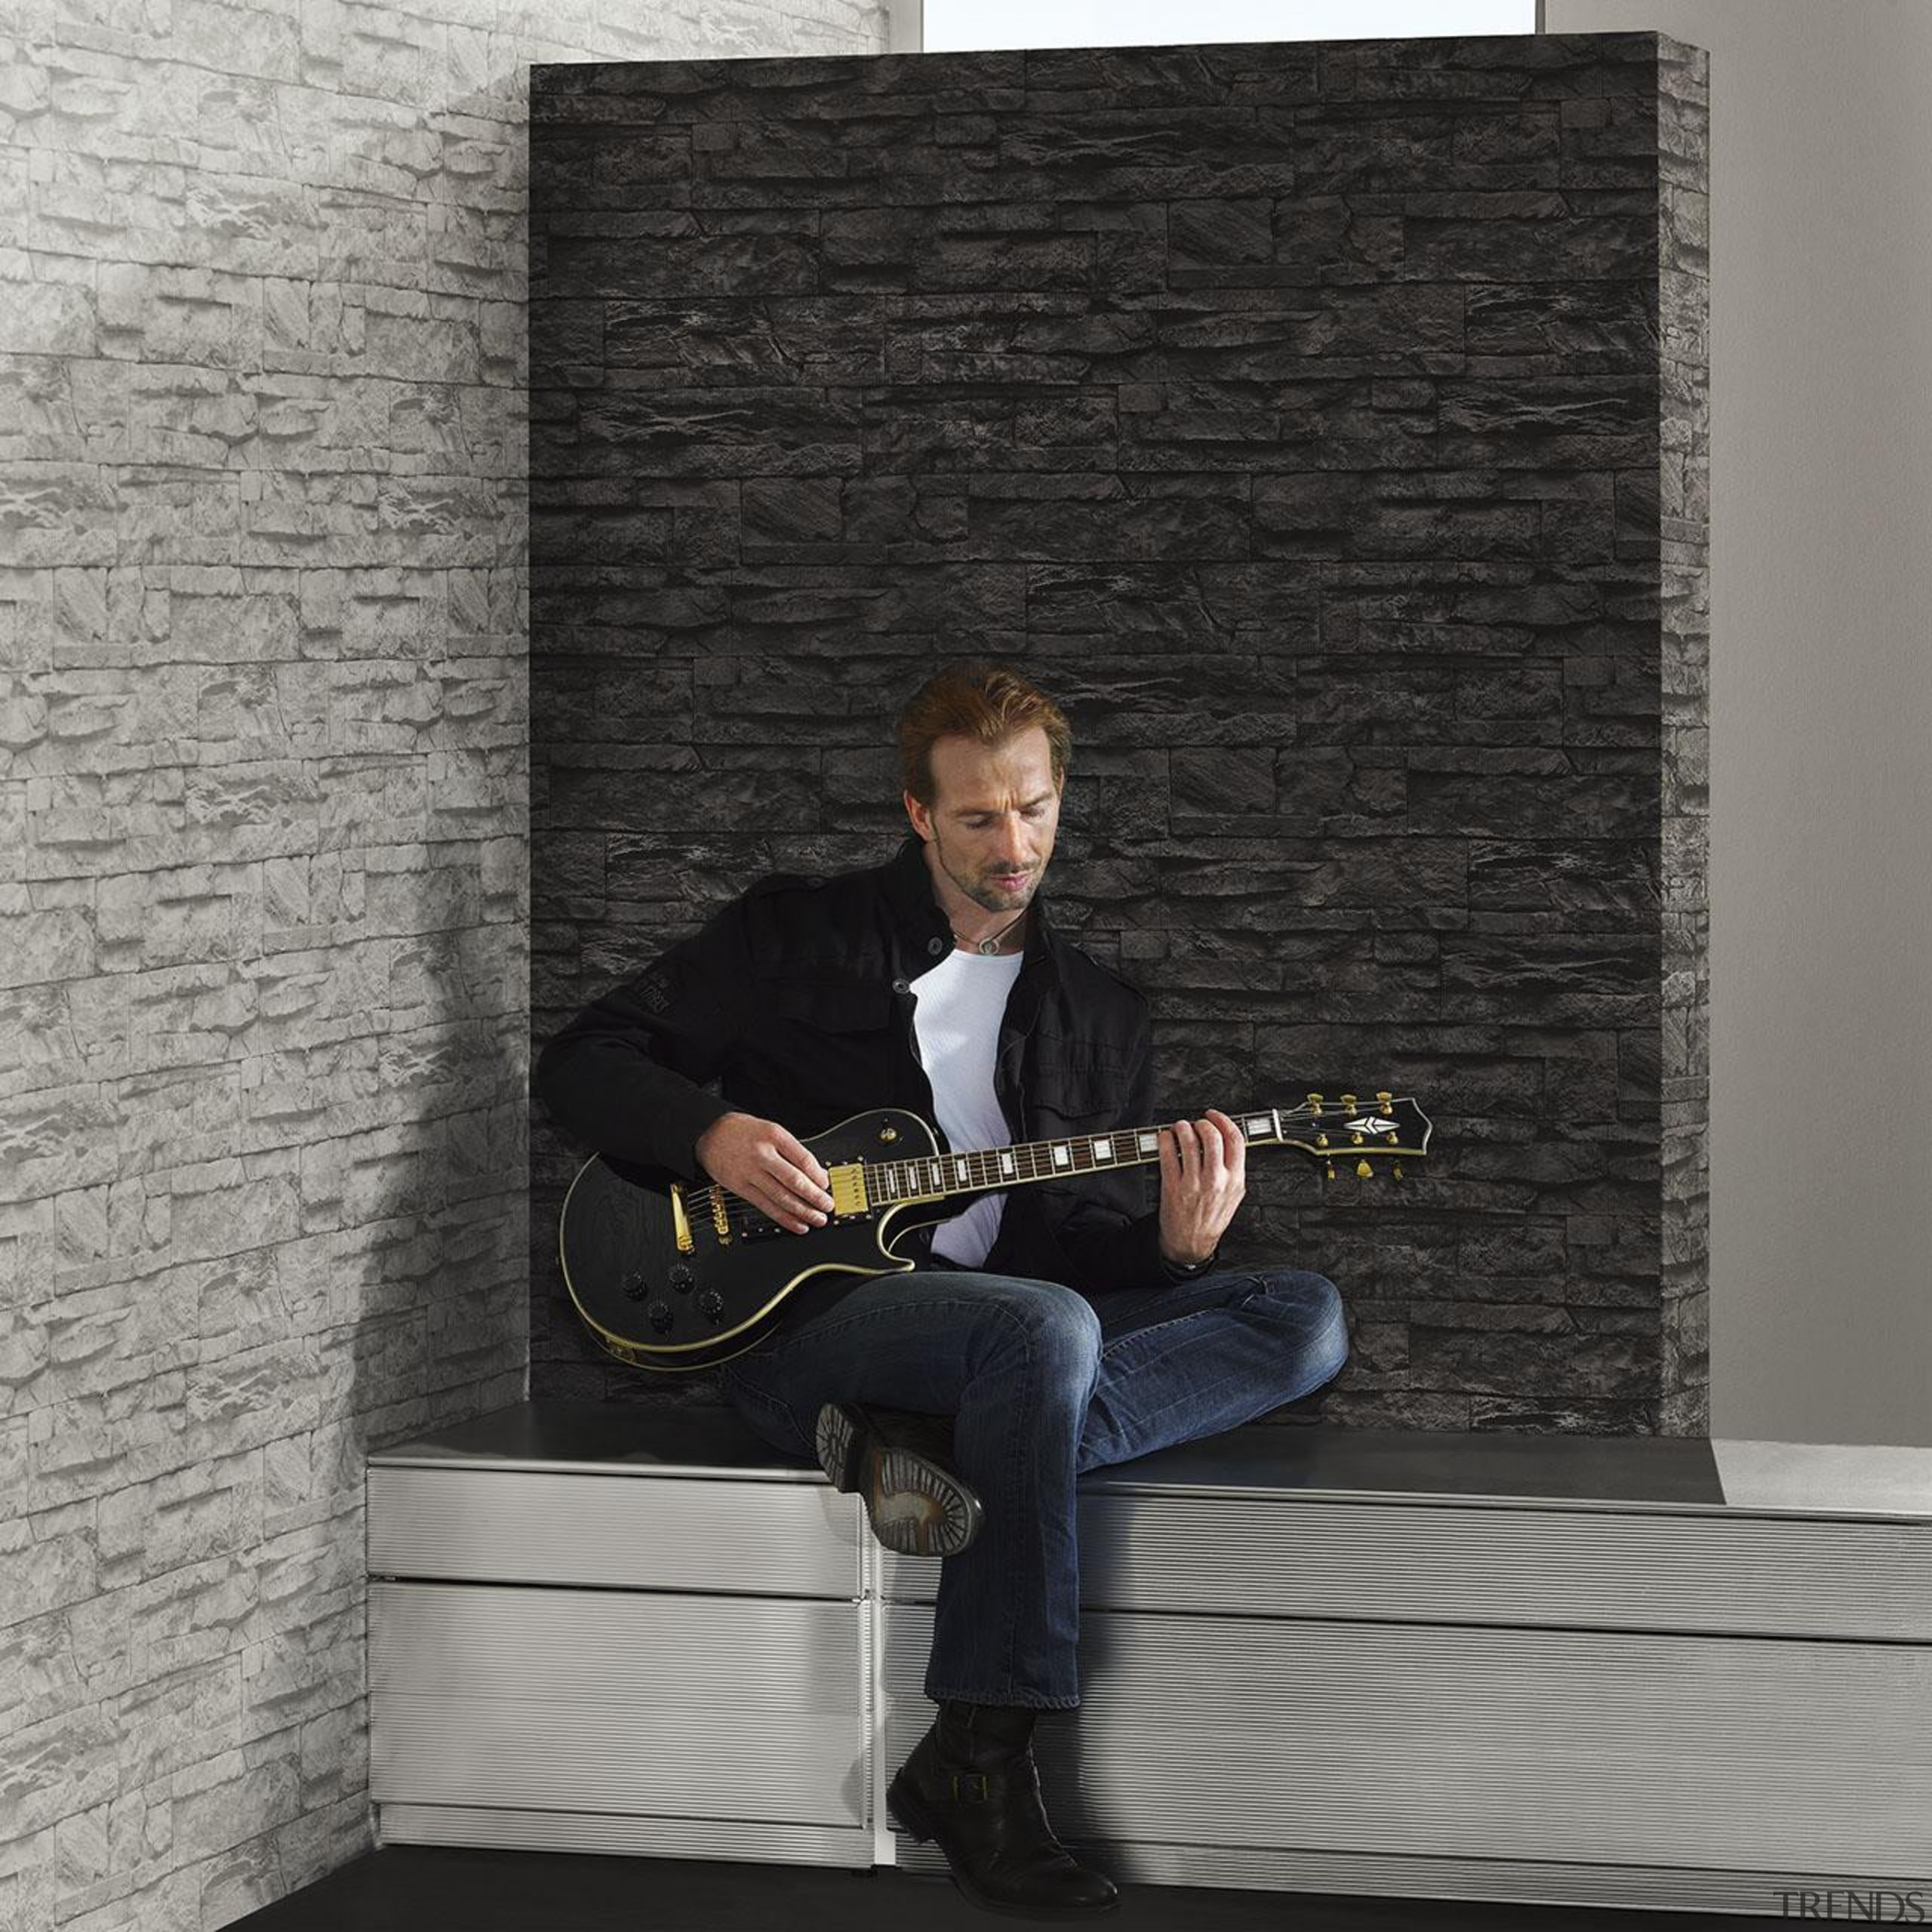 Modern Style Range - furniture | guitar | furniture, guitar, music, musical instrument, musical instrument accessory, musician, plucked string instruments, sitting, table, wall, gray, black